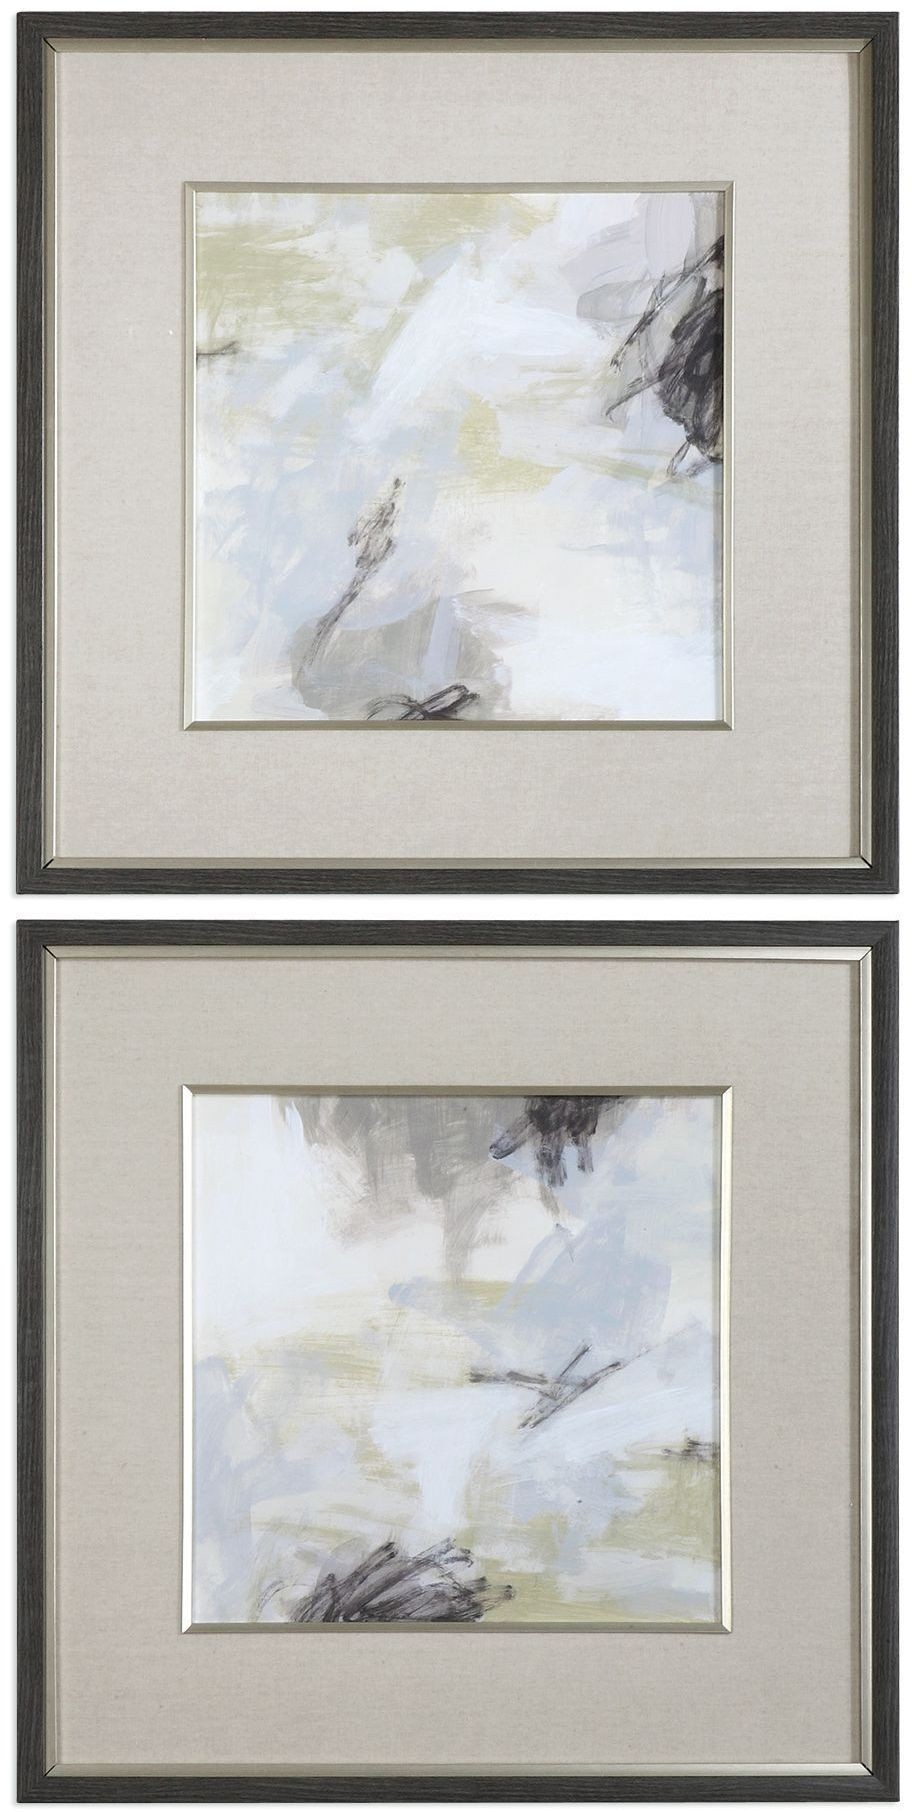 Abstract Vistas Silver Framed Prints Set Of 2 From